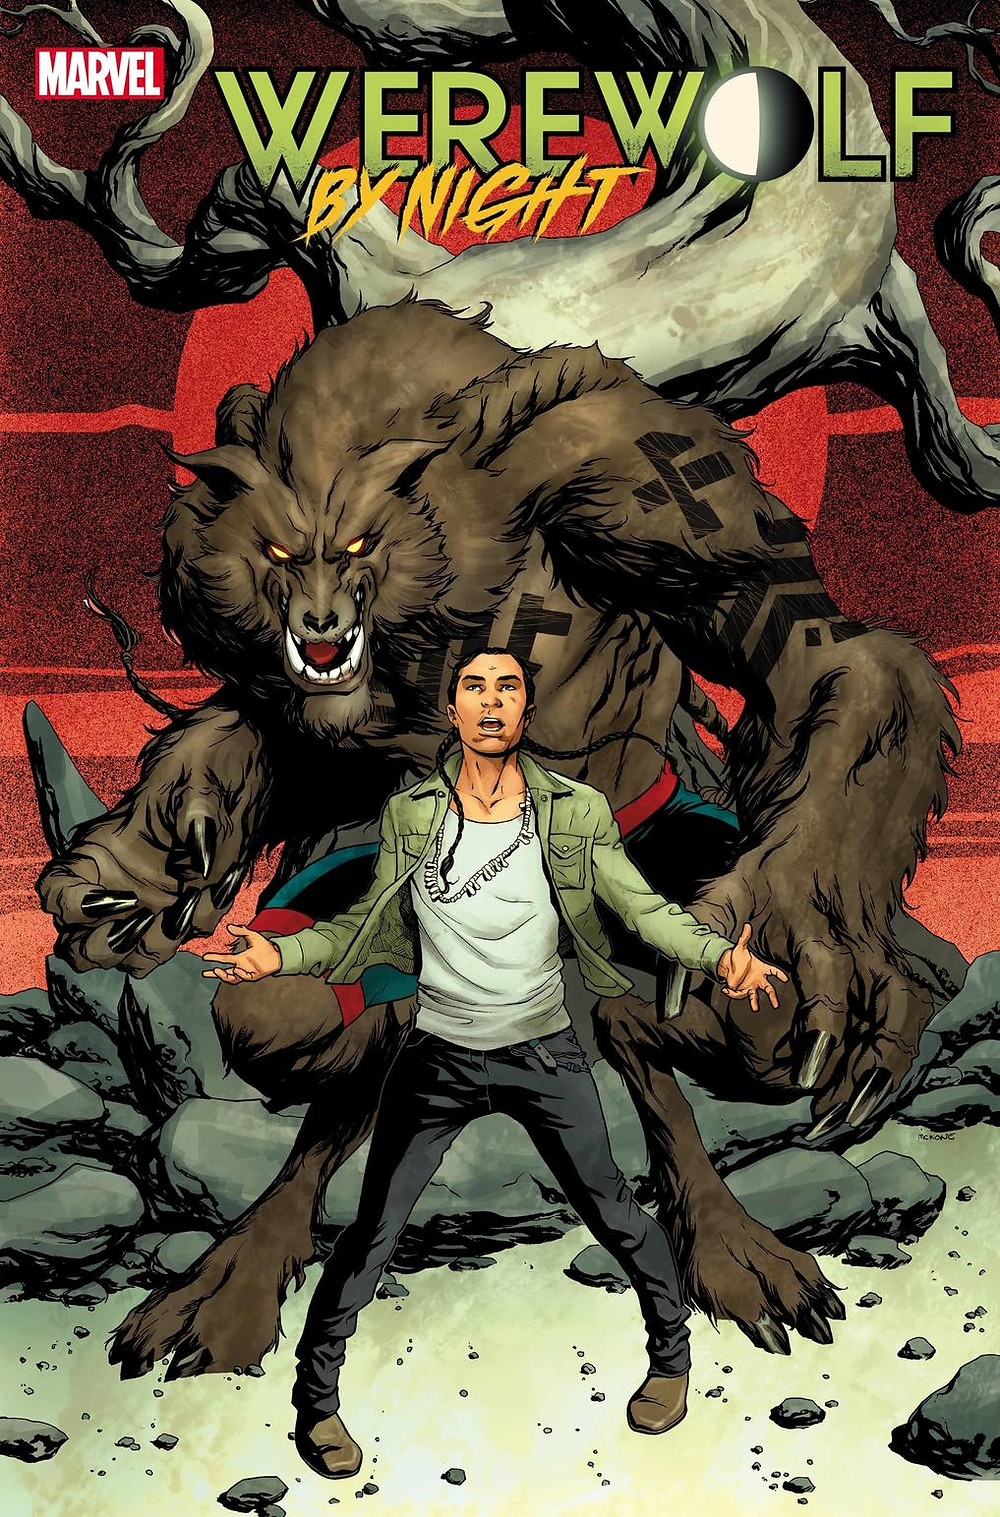 Comic book cover showing young man standing before a large brown werewolf